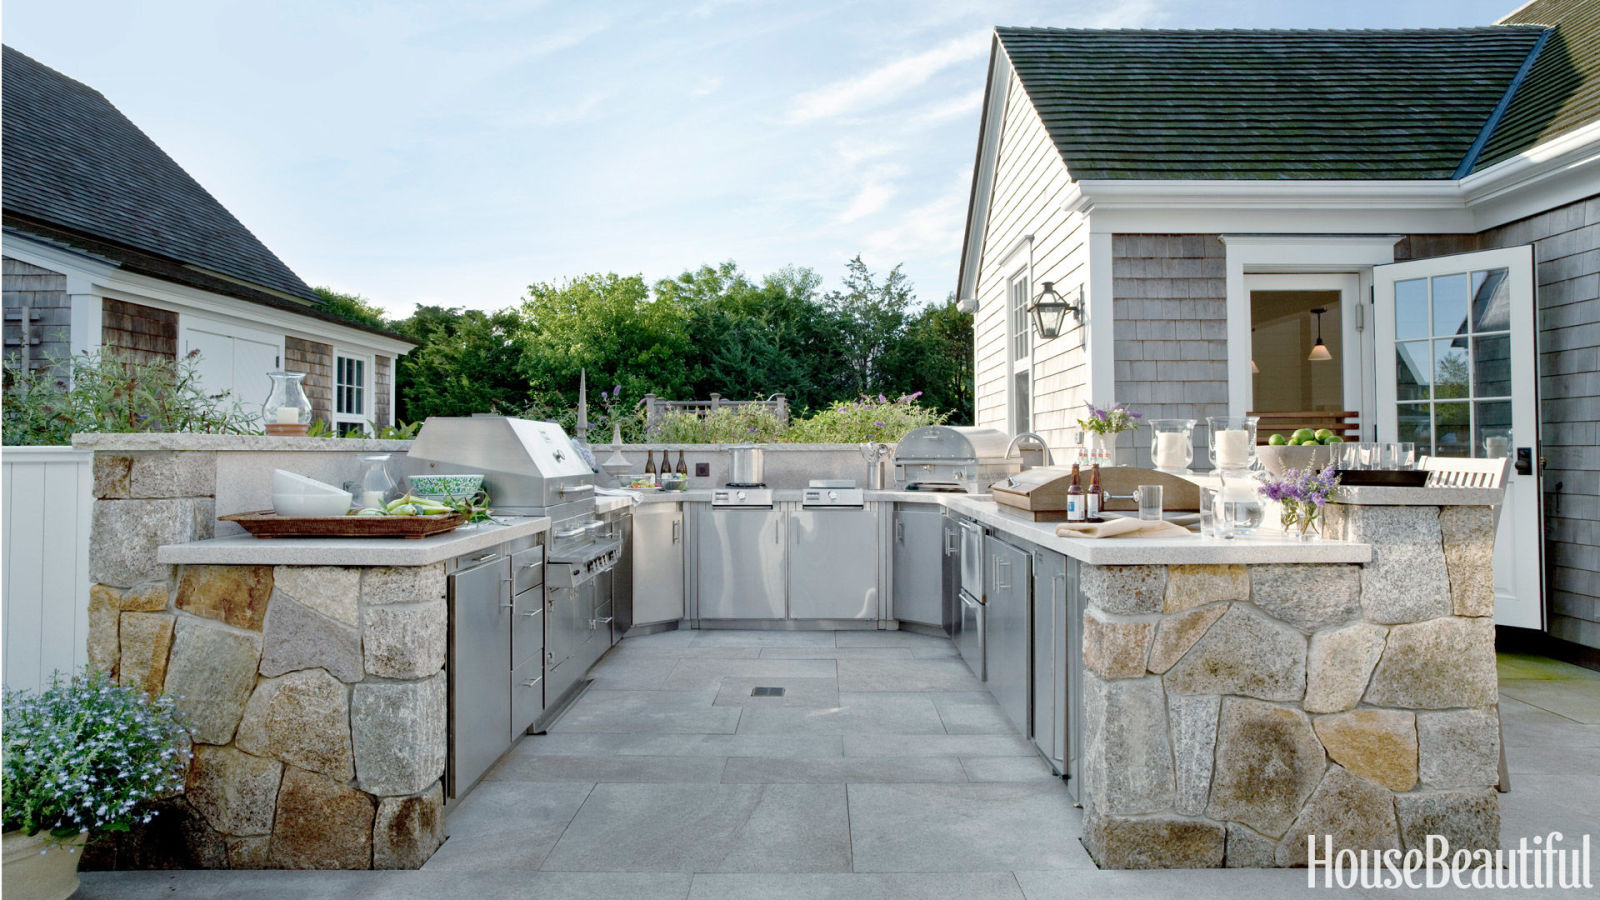 Kitchen Outdoor Modular Outdoor Kitchens Lowes Outdoor Kitchens Diy Outdoor